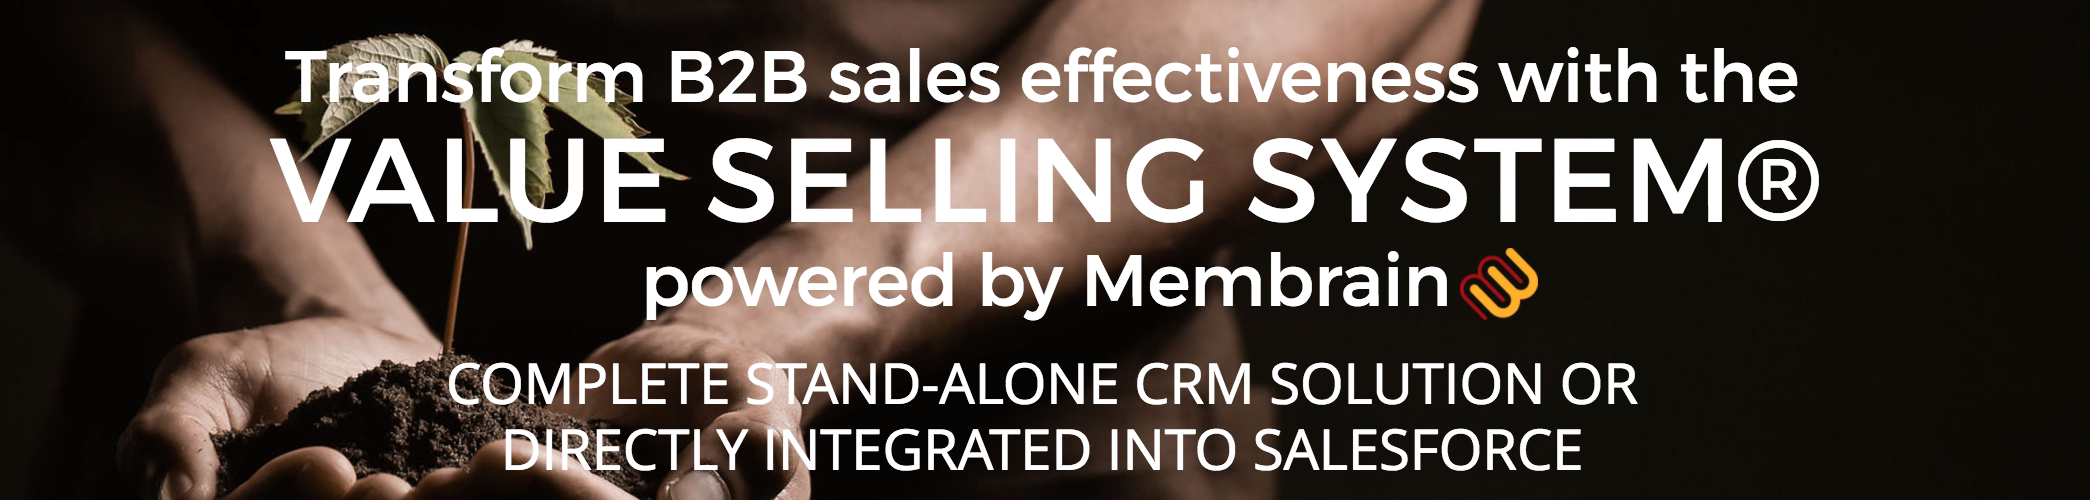 Value Selling System powered by Membrain